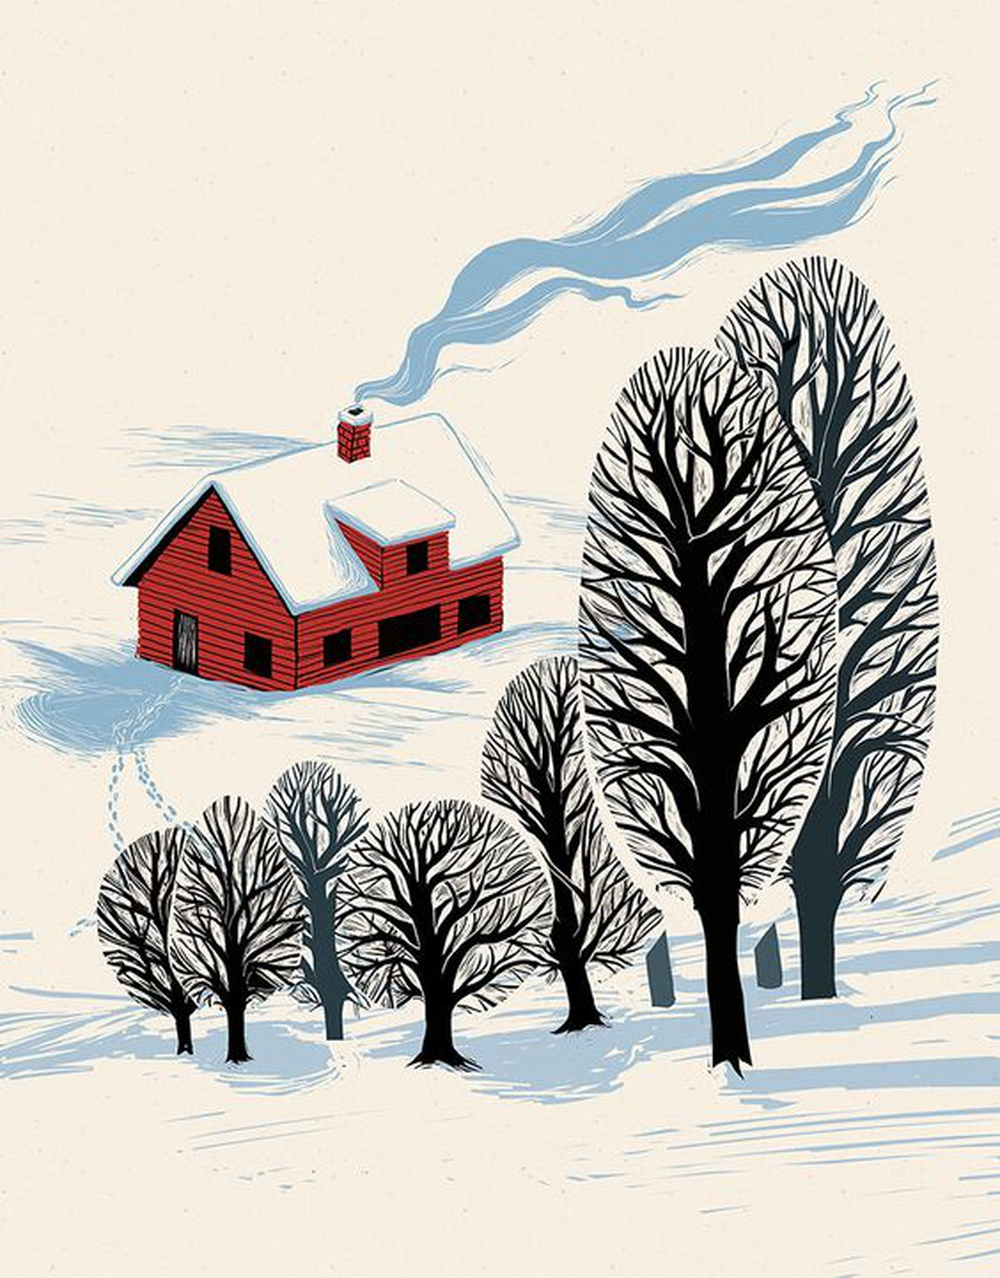 A pretty house makes winter more poetic, and winter increases the poetry of the dwelling